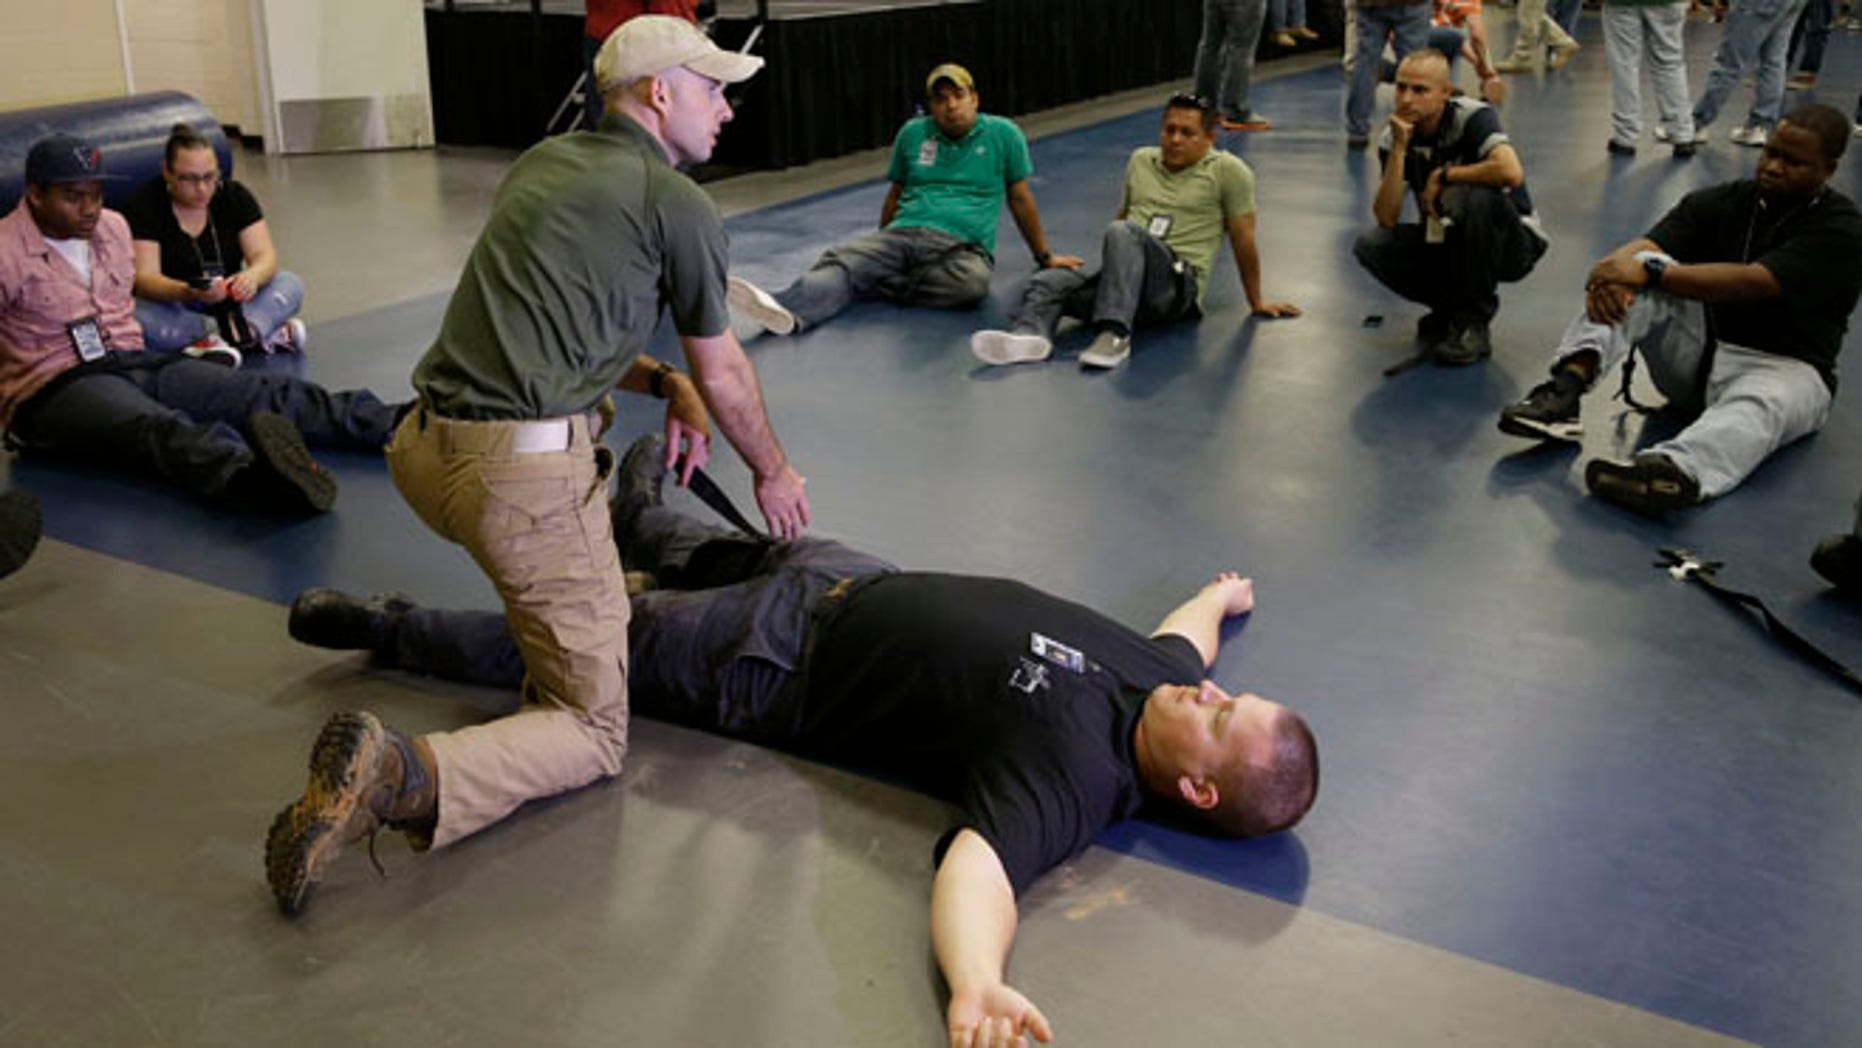 June 3, 2014: Houston police officer Austin Huckabee, left, uses officer Thomas Emmite, Jr, to show other officers how to apply a tourniquet at the police academy in Houston.